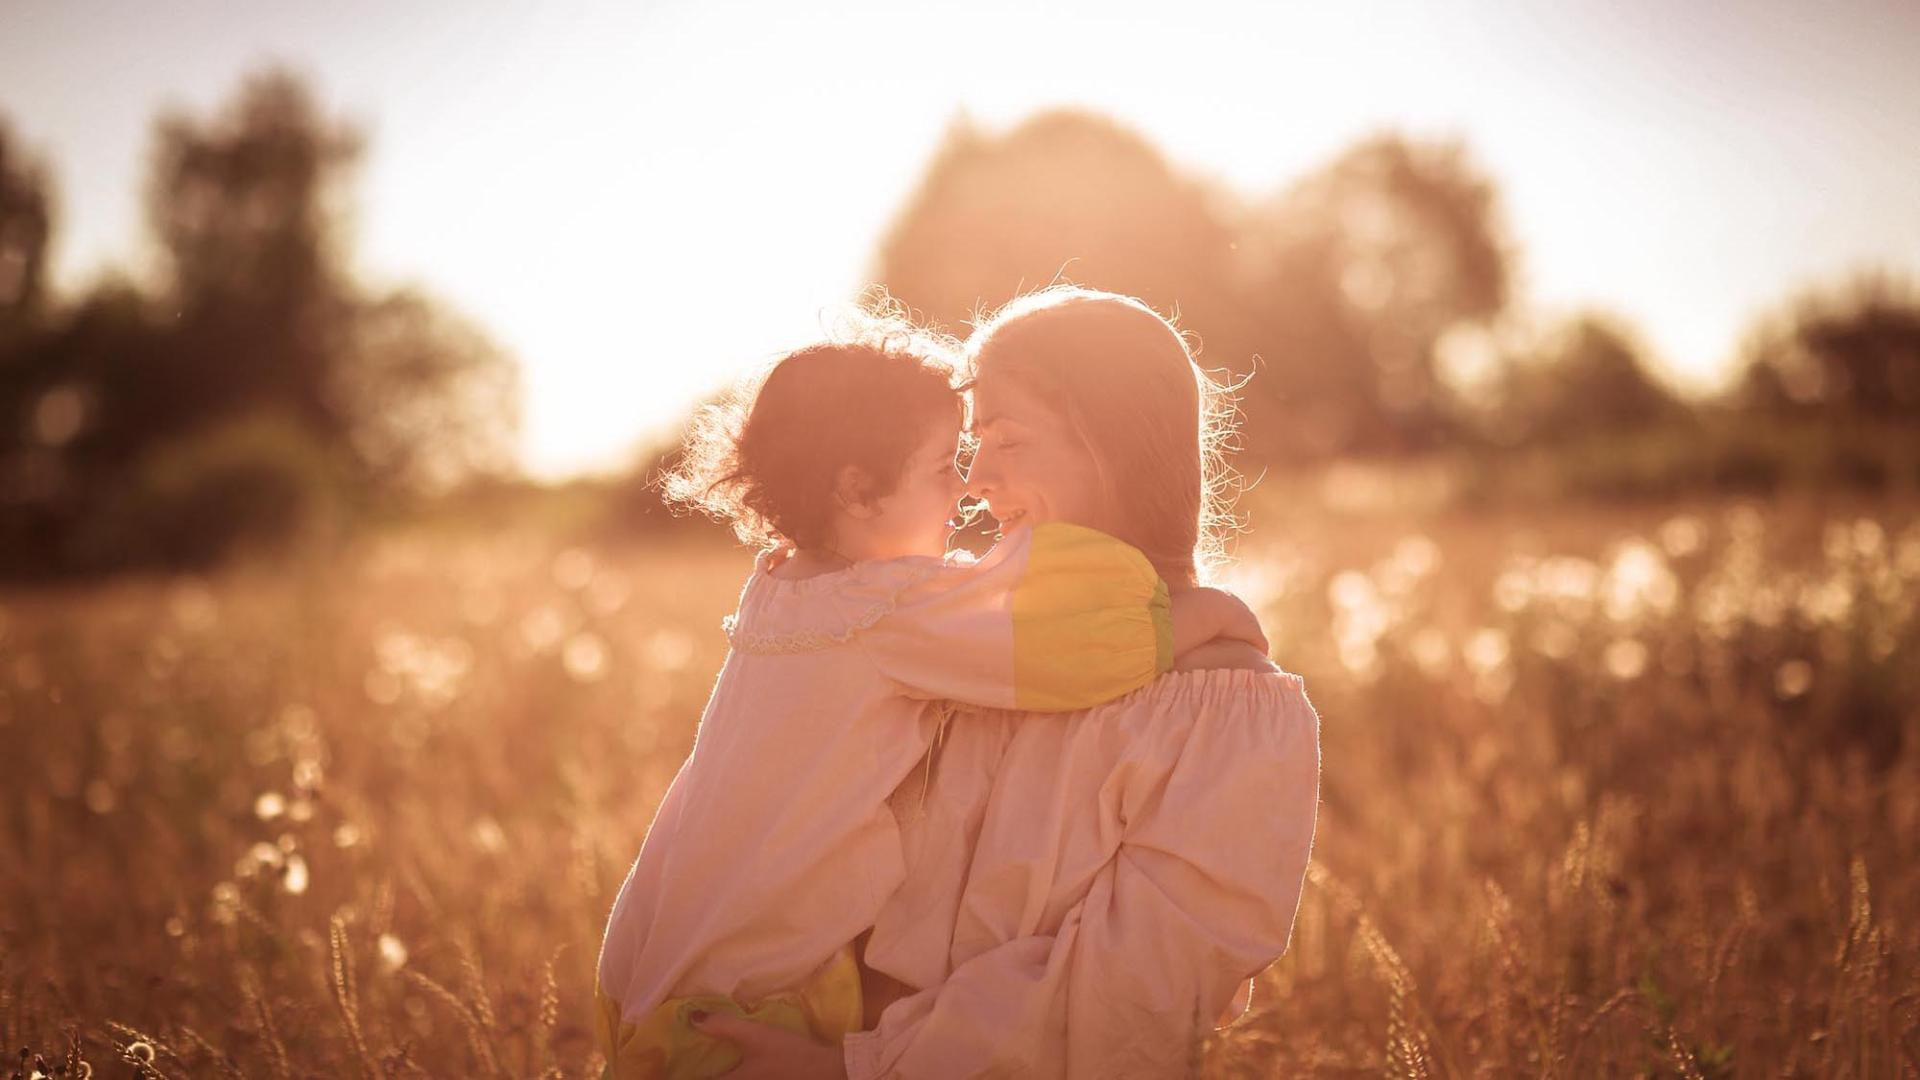 mother with daughter on the hands in a wheat field, On the Sunset embrace